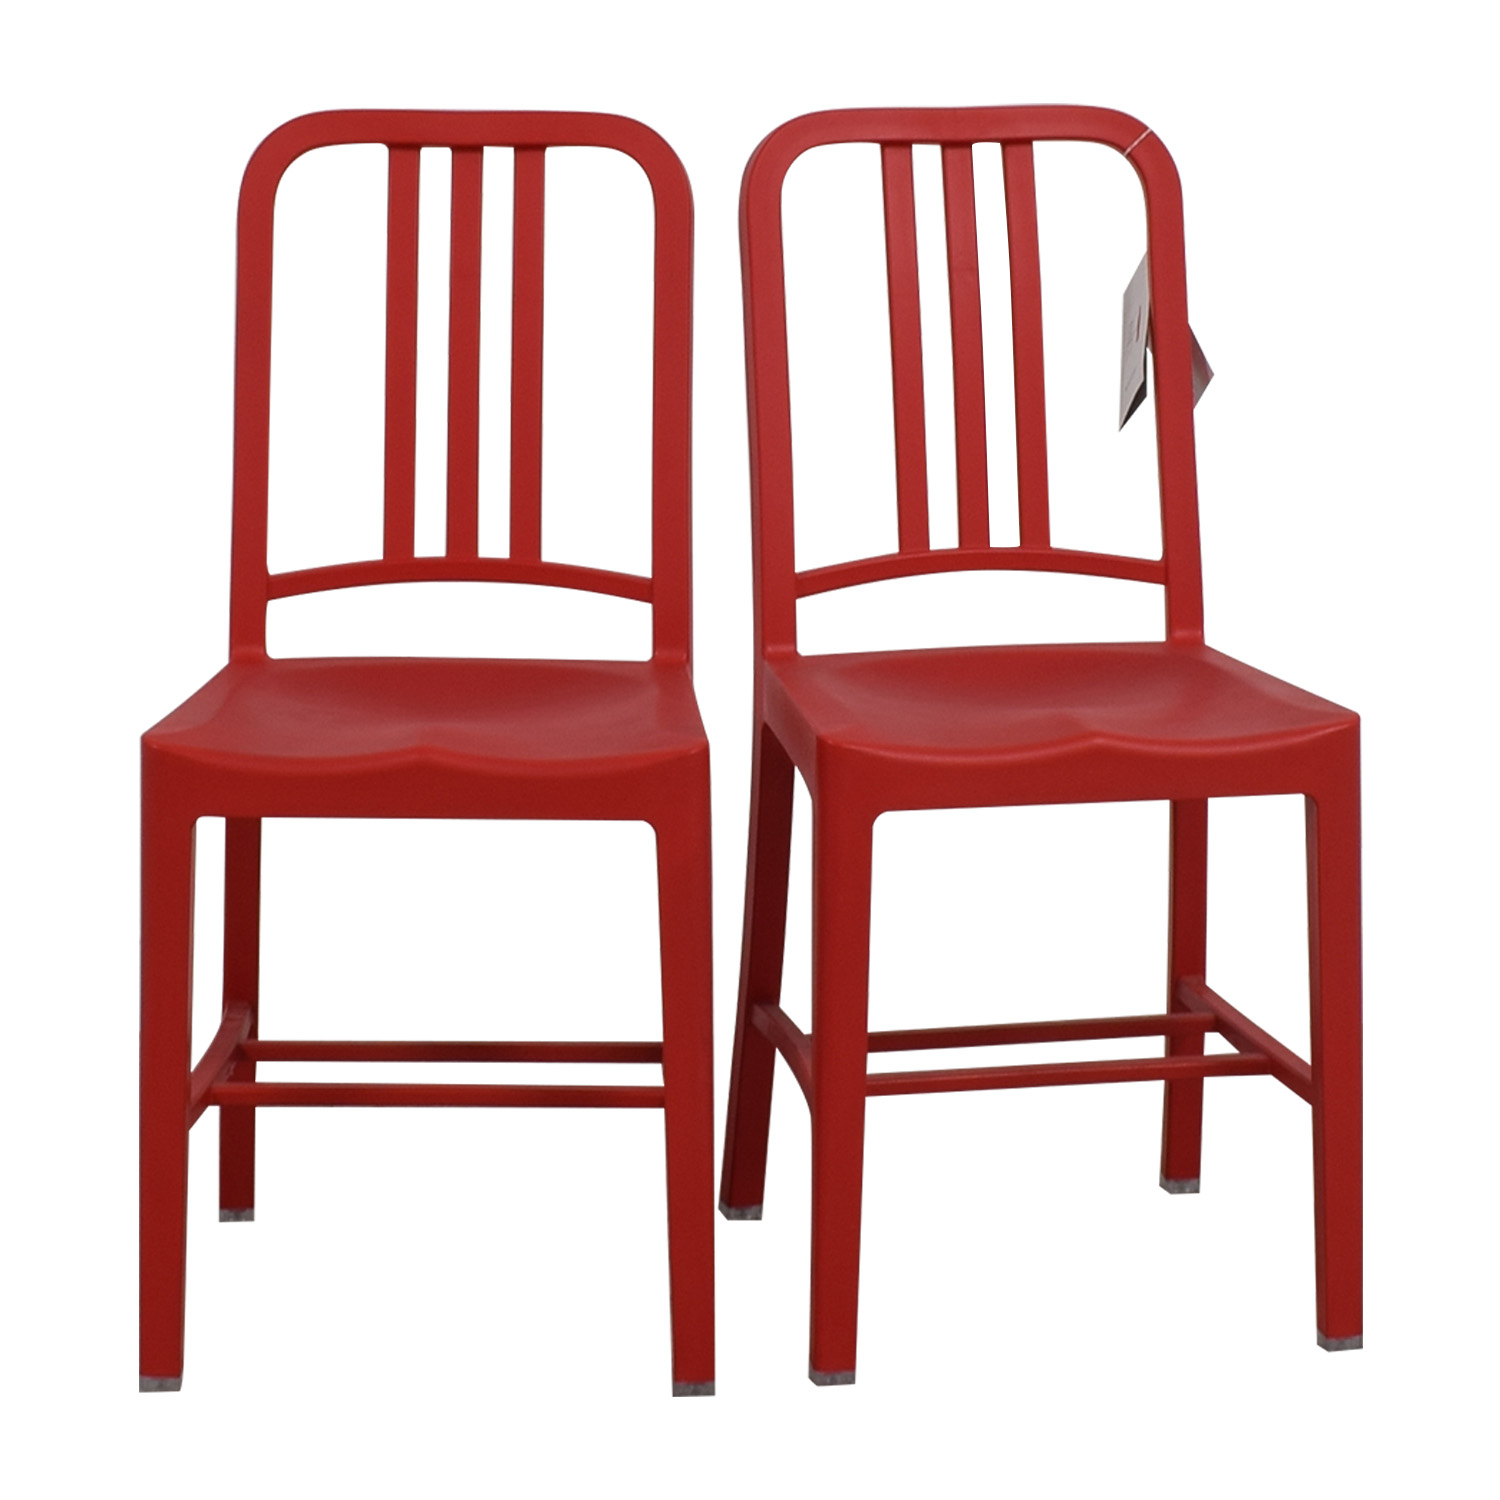 Emeco Emeco 111 Navy Recycled Red Chairs Dining Chairs